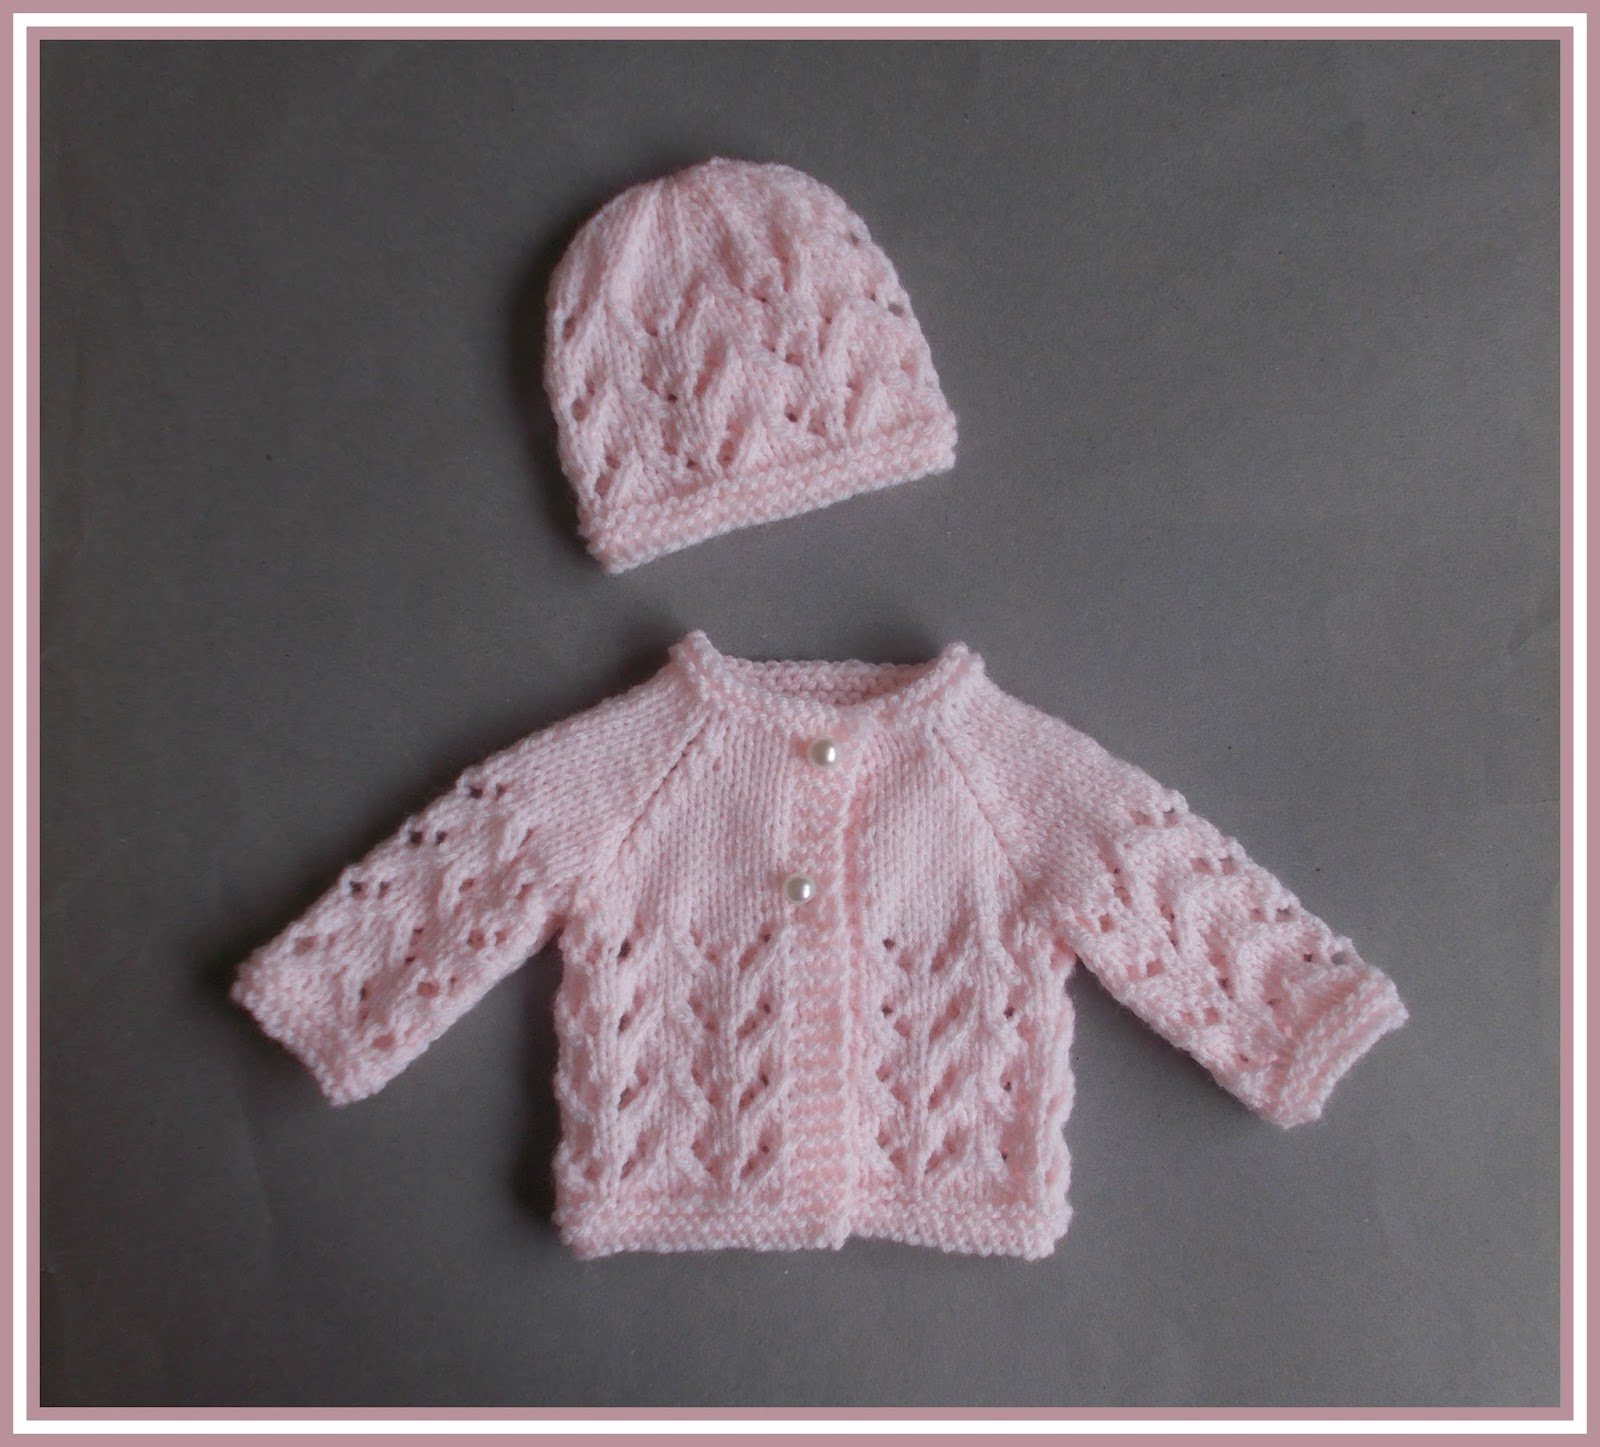 Knitting Pattern Baby Hat Premature : mariannas lazy daisy days: Little Bibi - Preemie Baby Jacket & Hat